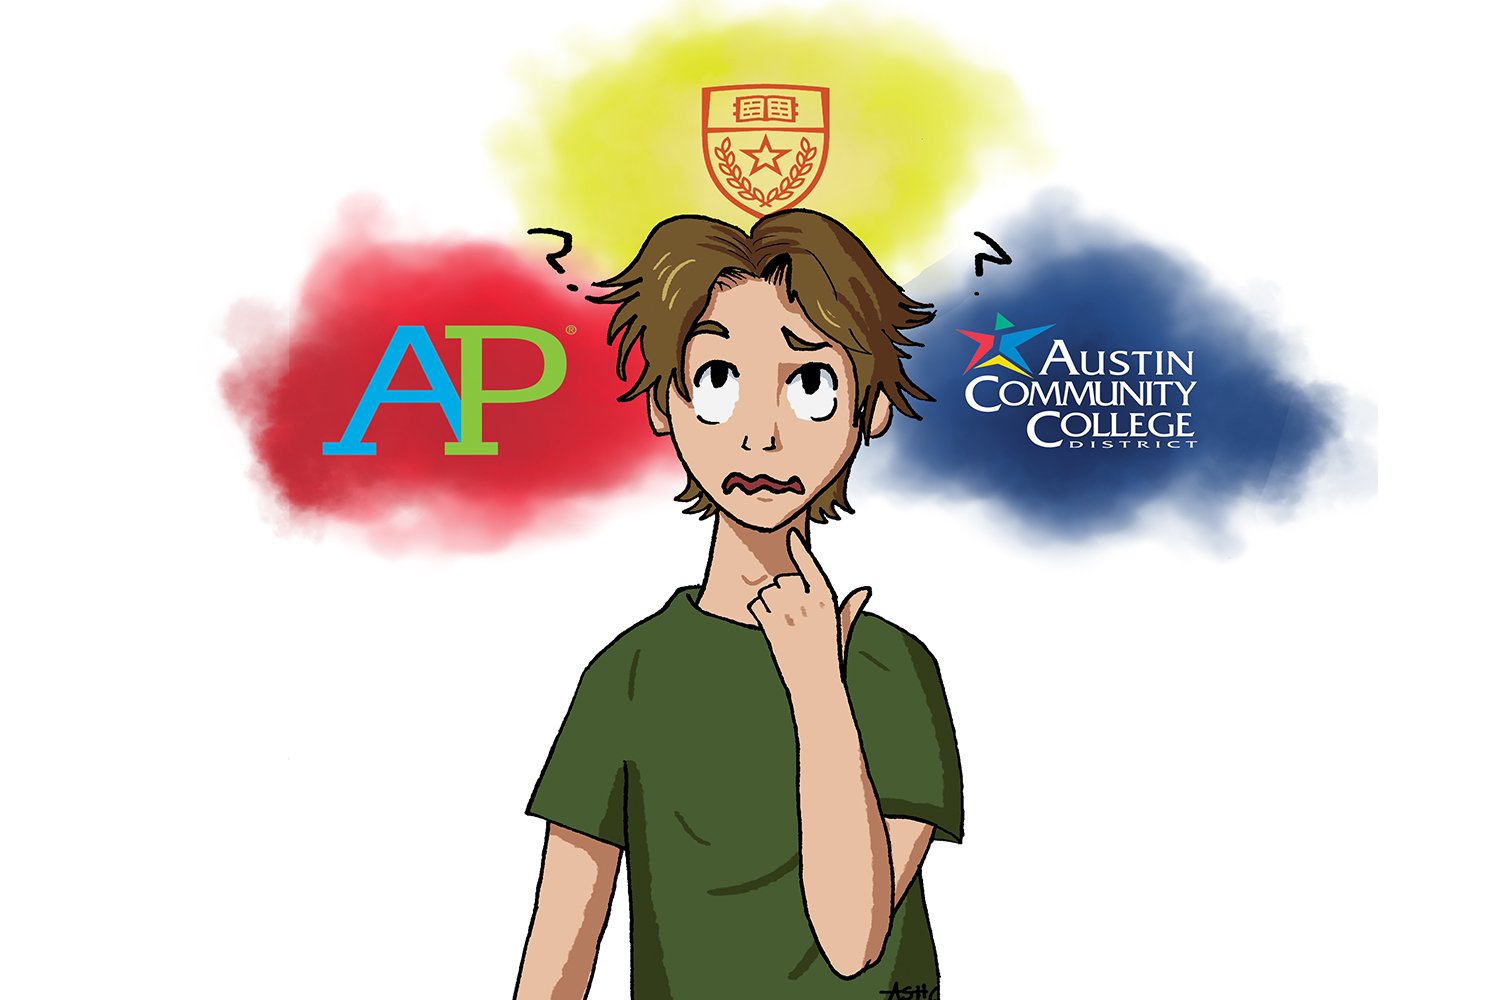 Advanced academic classes give students who are motivated a chance to earn college credit. They are also a safe way for students who are unsure if they are ready for college to try out college-level work.